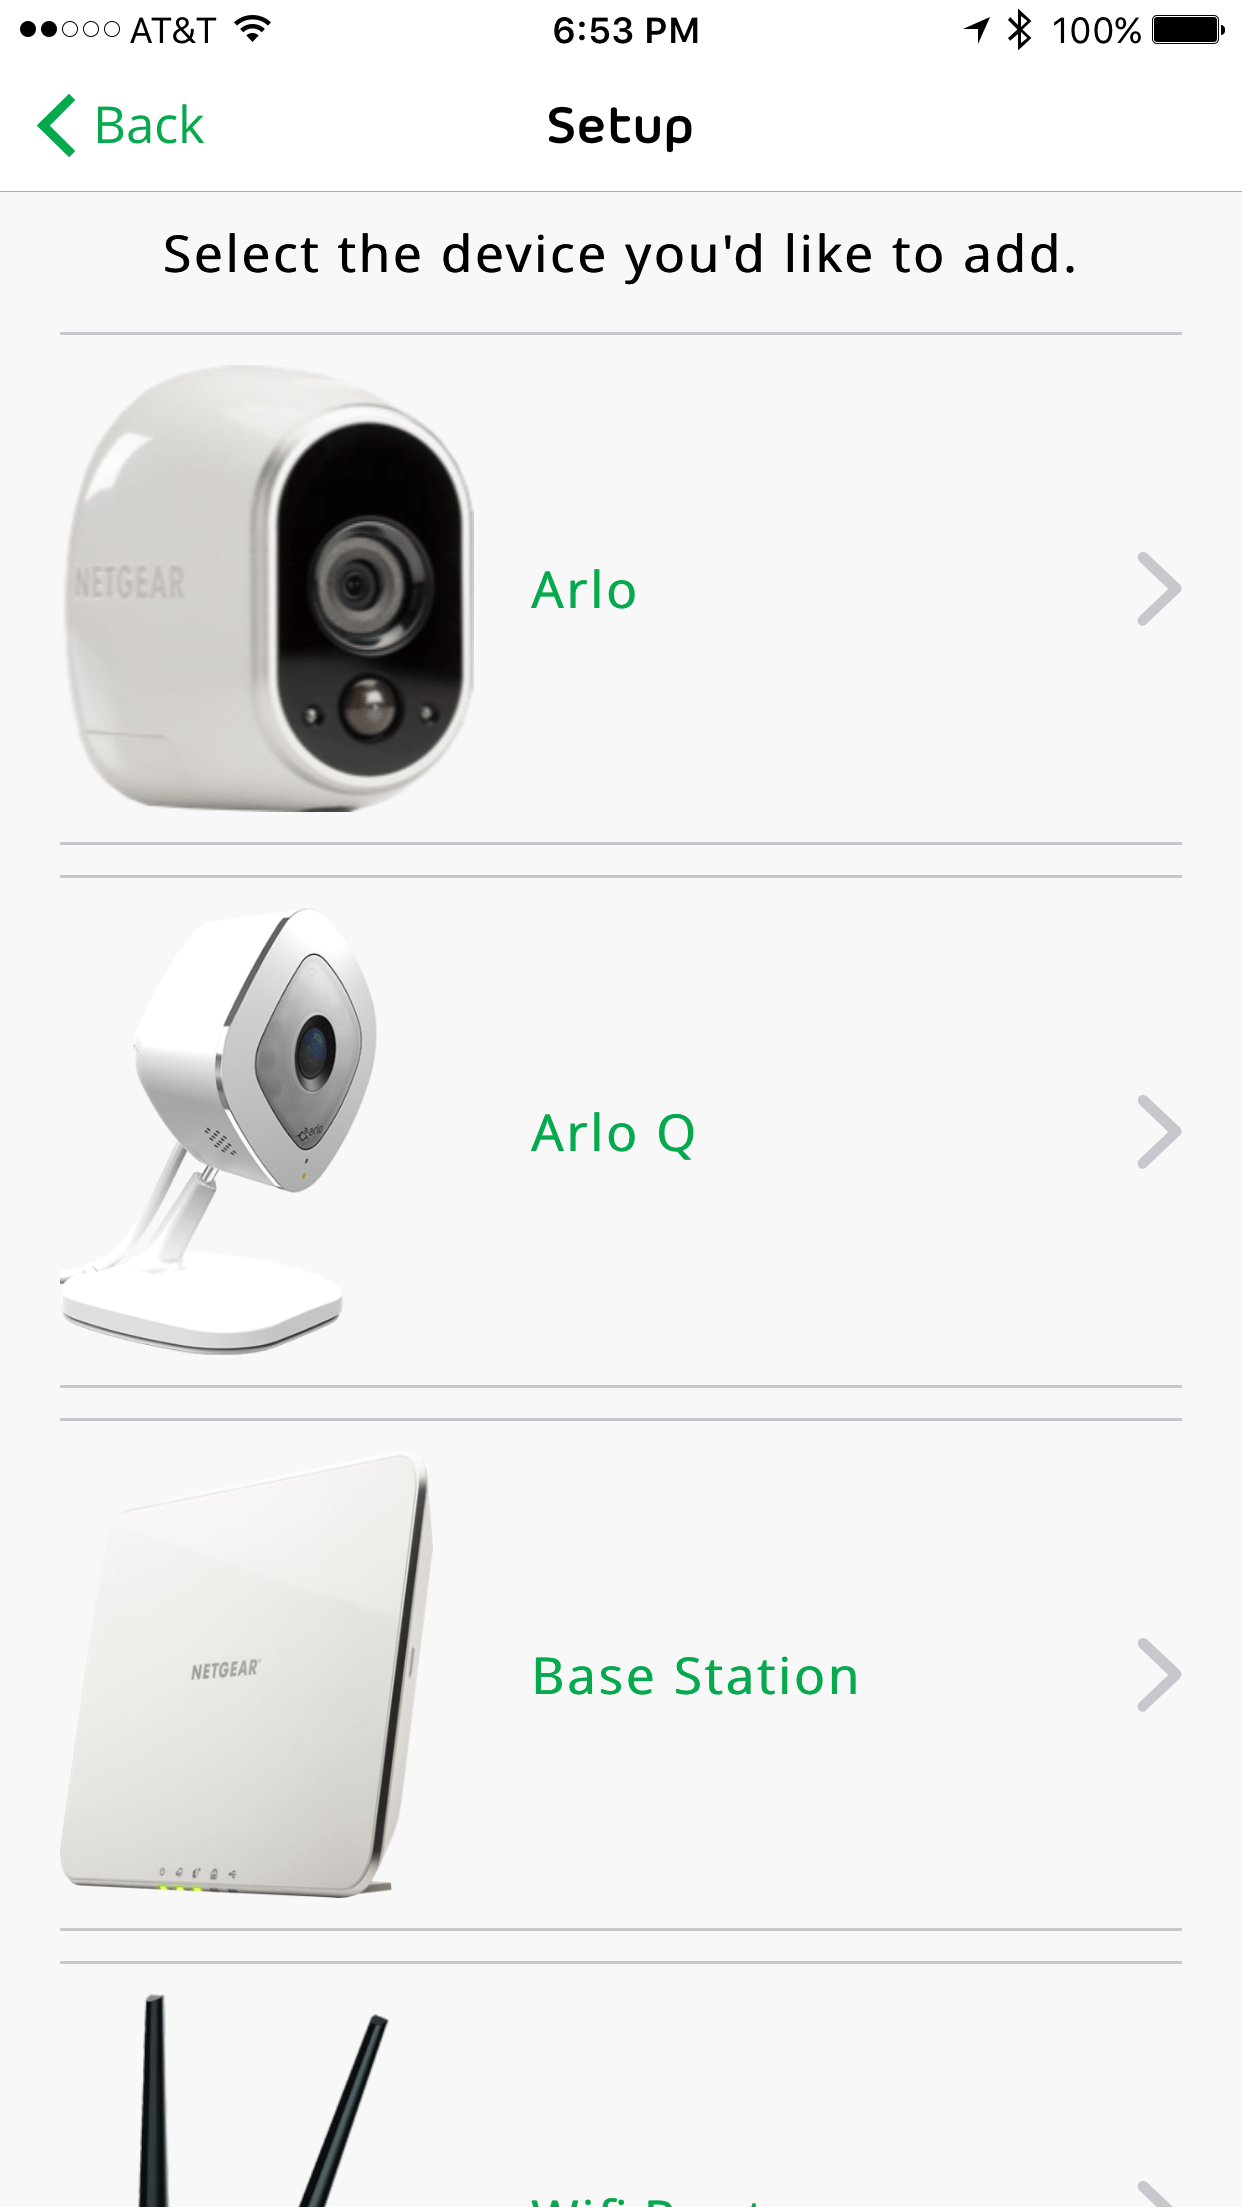 NETGEAR's Arlo Q Rounds Out Video Security w/ Wired-power HD Camera